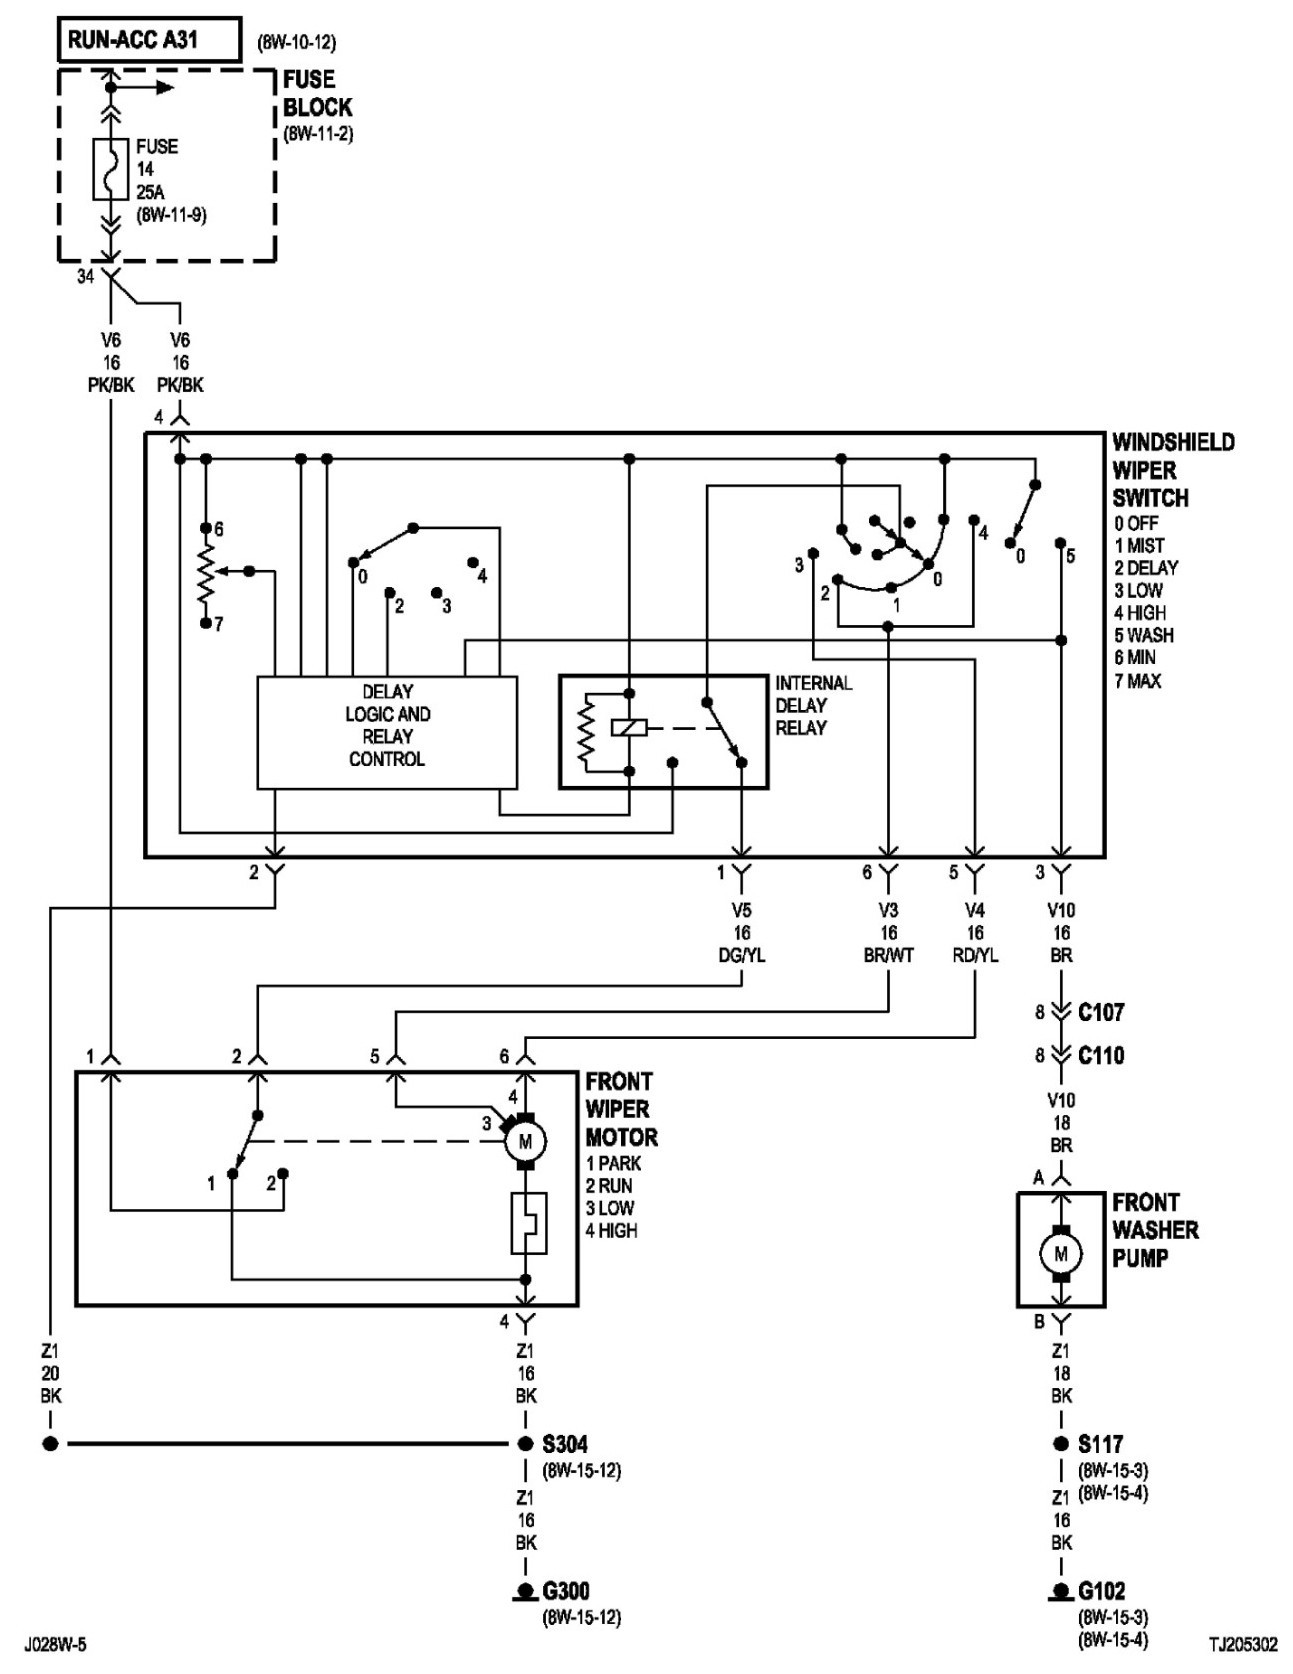 2004 Jeep Wrangler Wiring Diagram Electrical Schematics Tj Ignition Switch Fuse Box U2022 Turn Signal